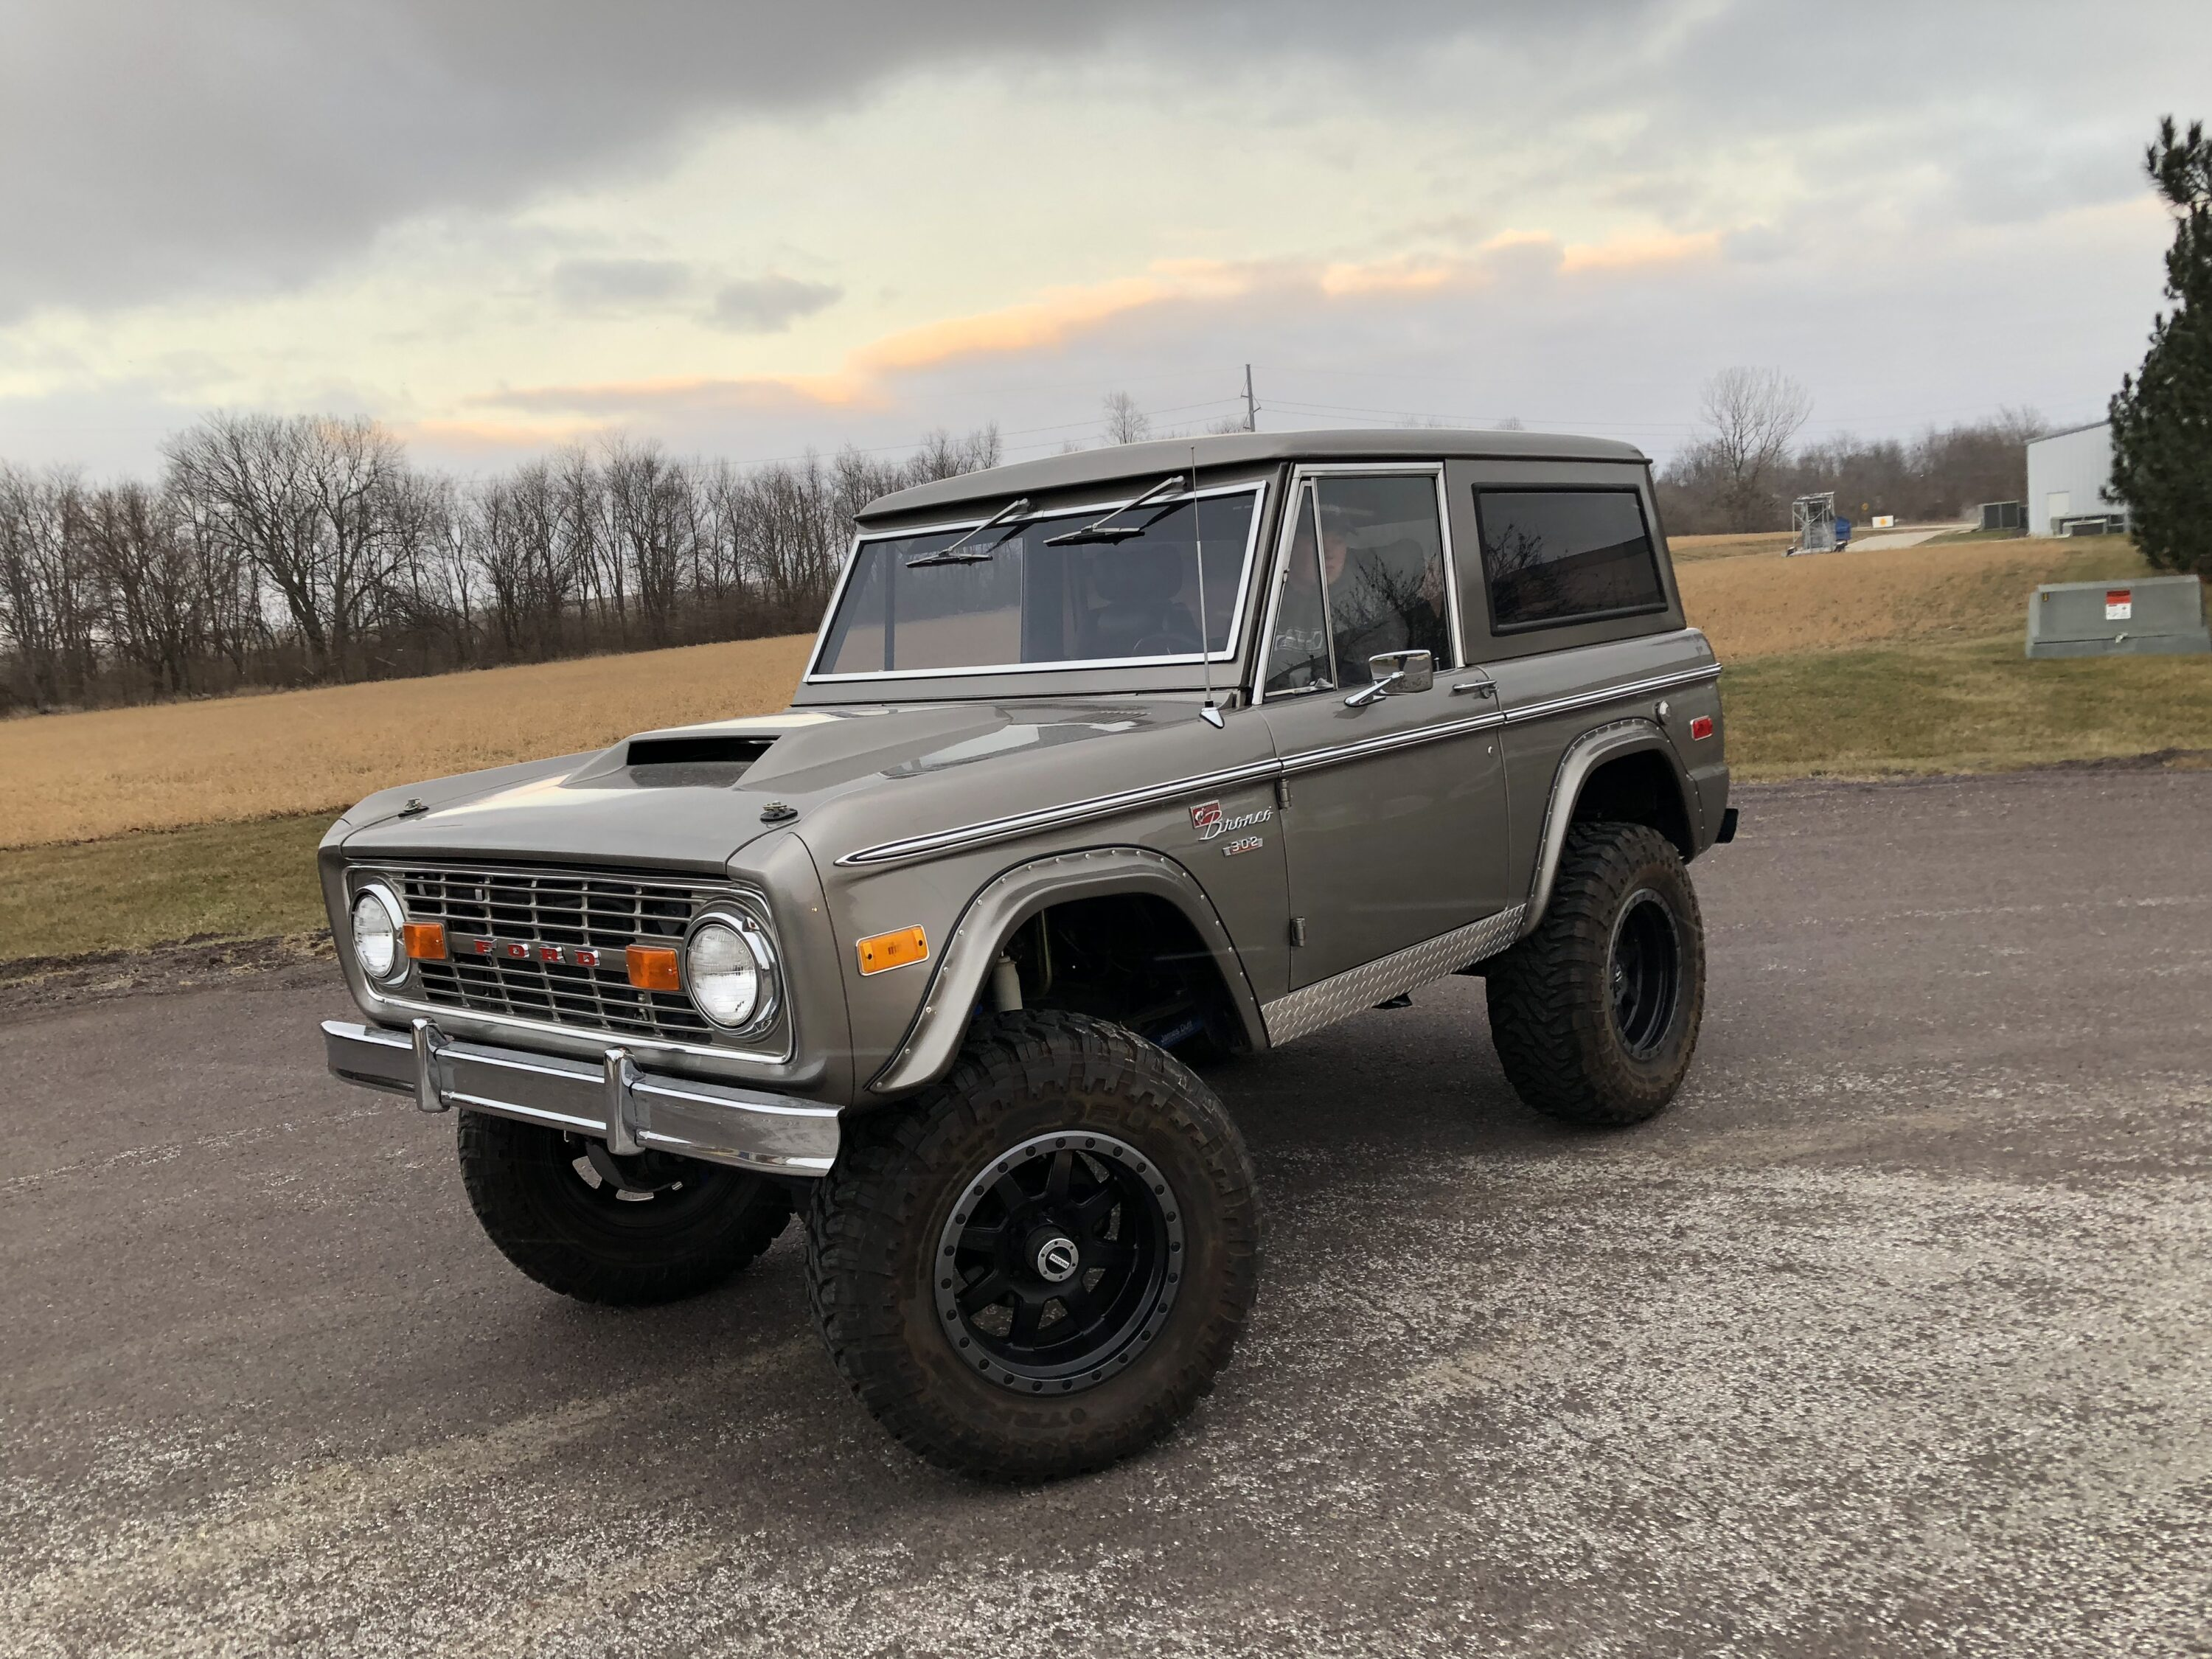 Ford Broncos For Sale - Early Broncos For Sale | Maxlider Brothers ...